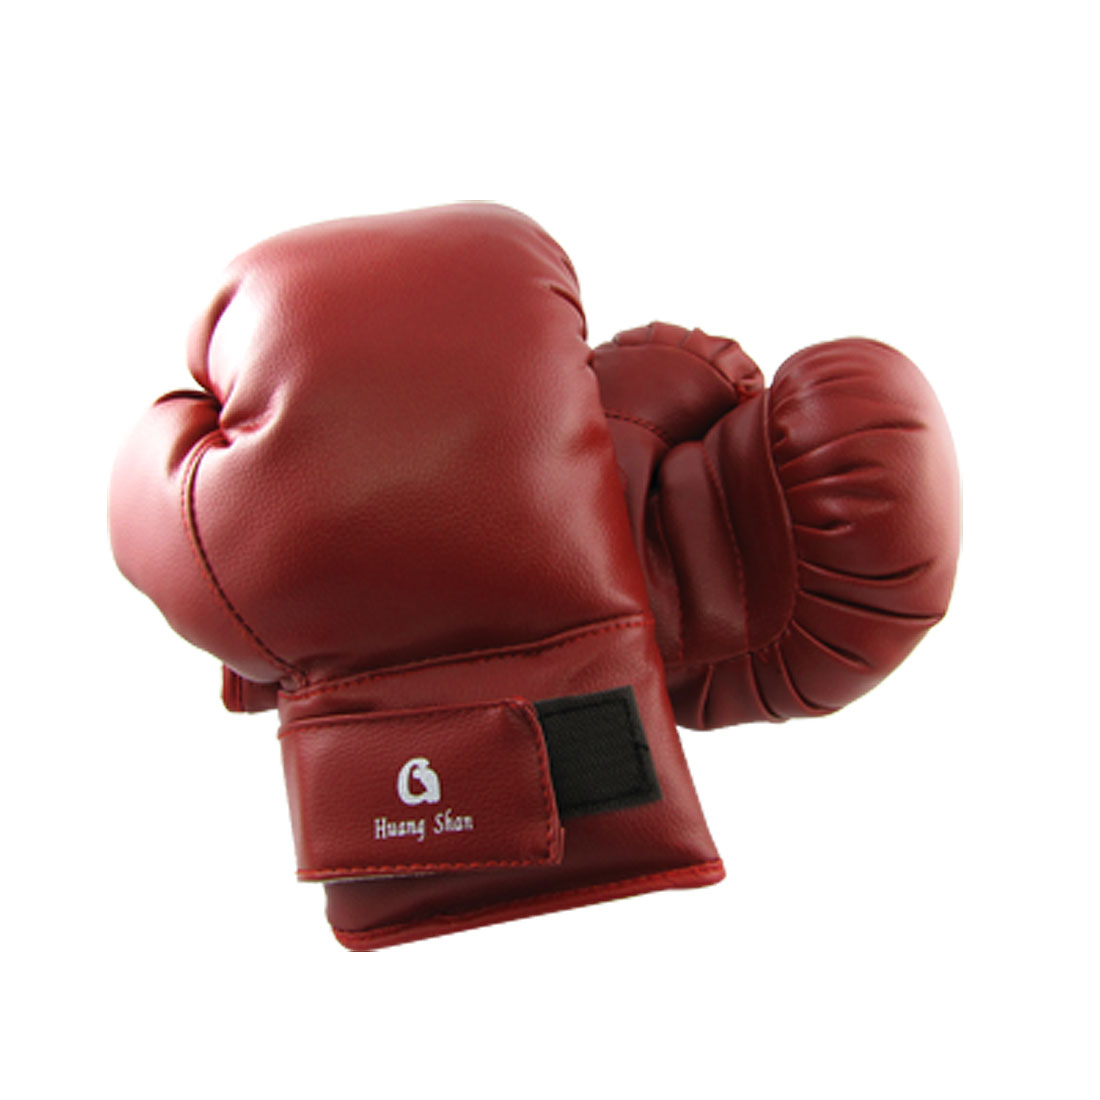 Hook and Loop Fastener Belt Red Faux Leather Sparring Gear Gloves for Boxing